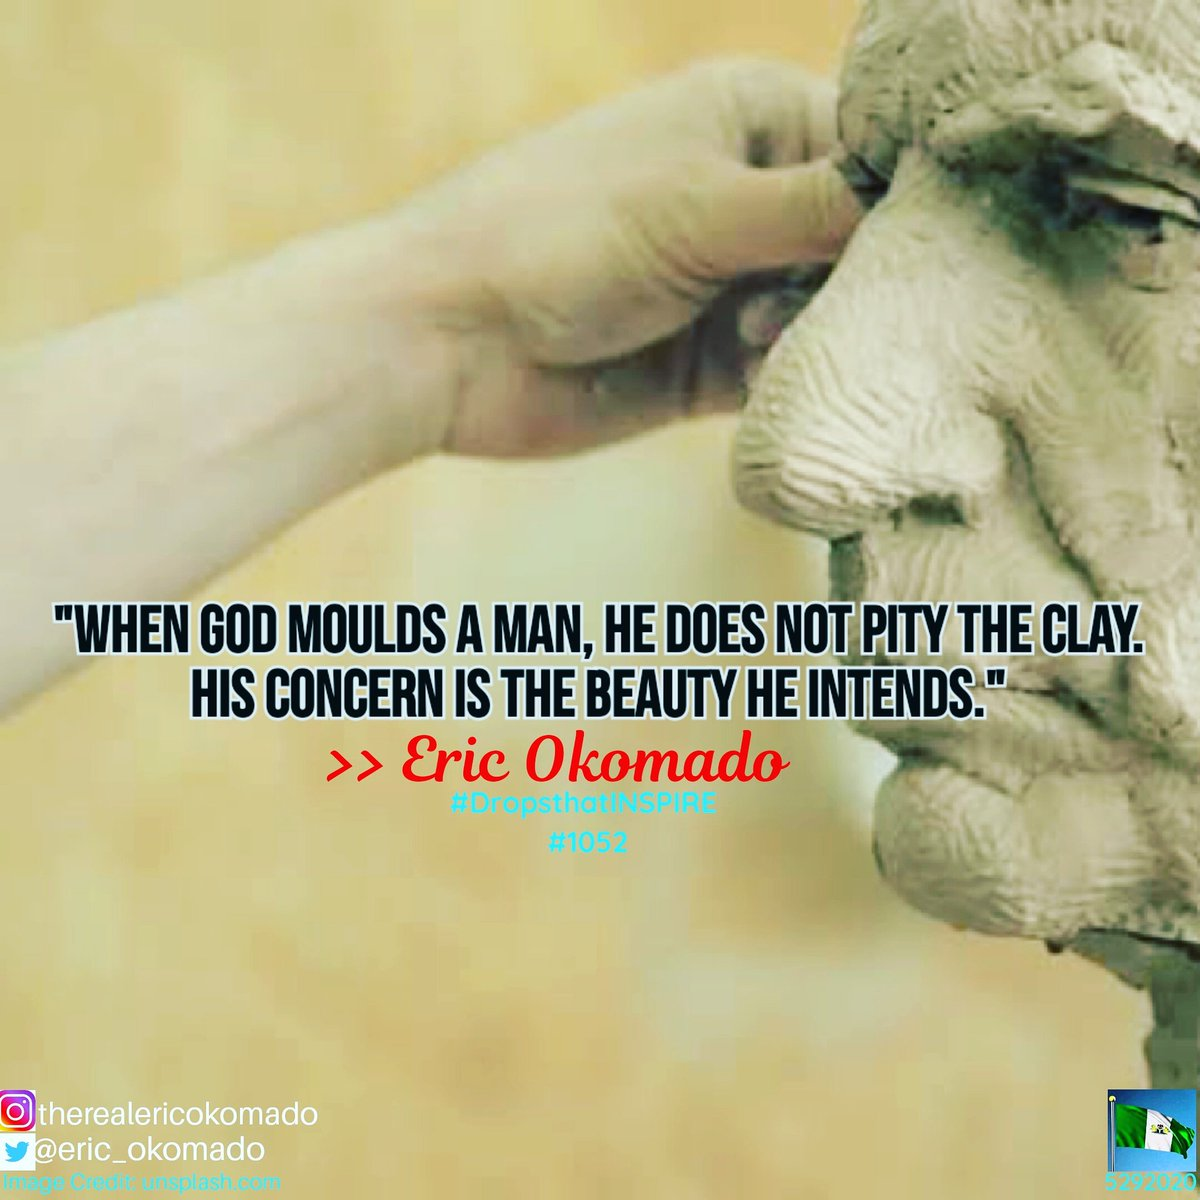 His Mighty Hands often press hard on the clay; But in the end, my friend, the glory far outweighs the temporary pain we suffer.  #DropsthatINSPIRE  #BeINSPIREDtoday  #sculpture #clay #mighty #pain #press #hardlife #BeOpened2020 #godsplan #follo4folloback #BlackLivesMatter #f4fpic.twitter.com/Z93SHMbF8q